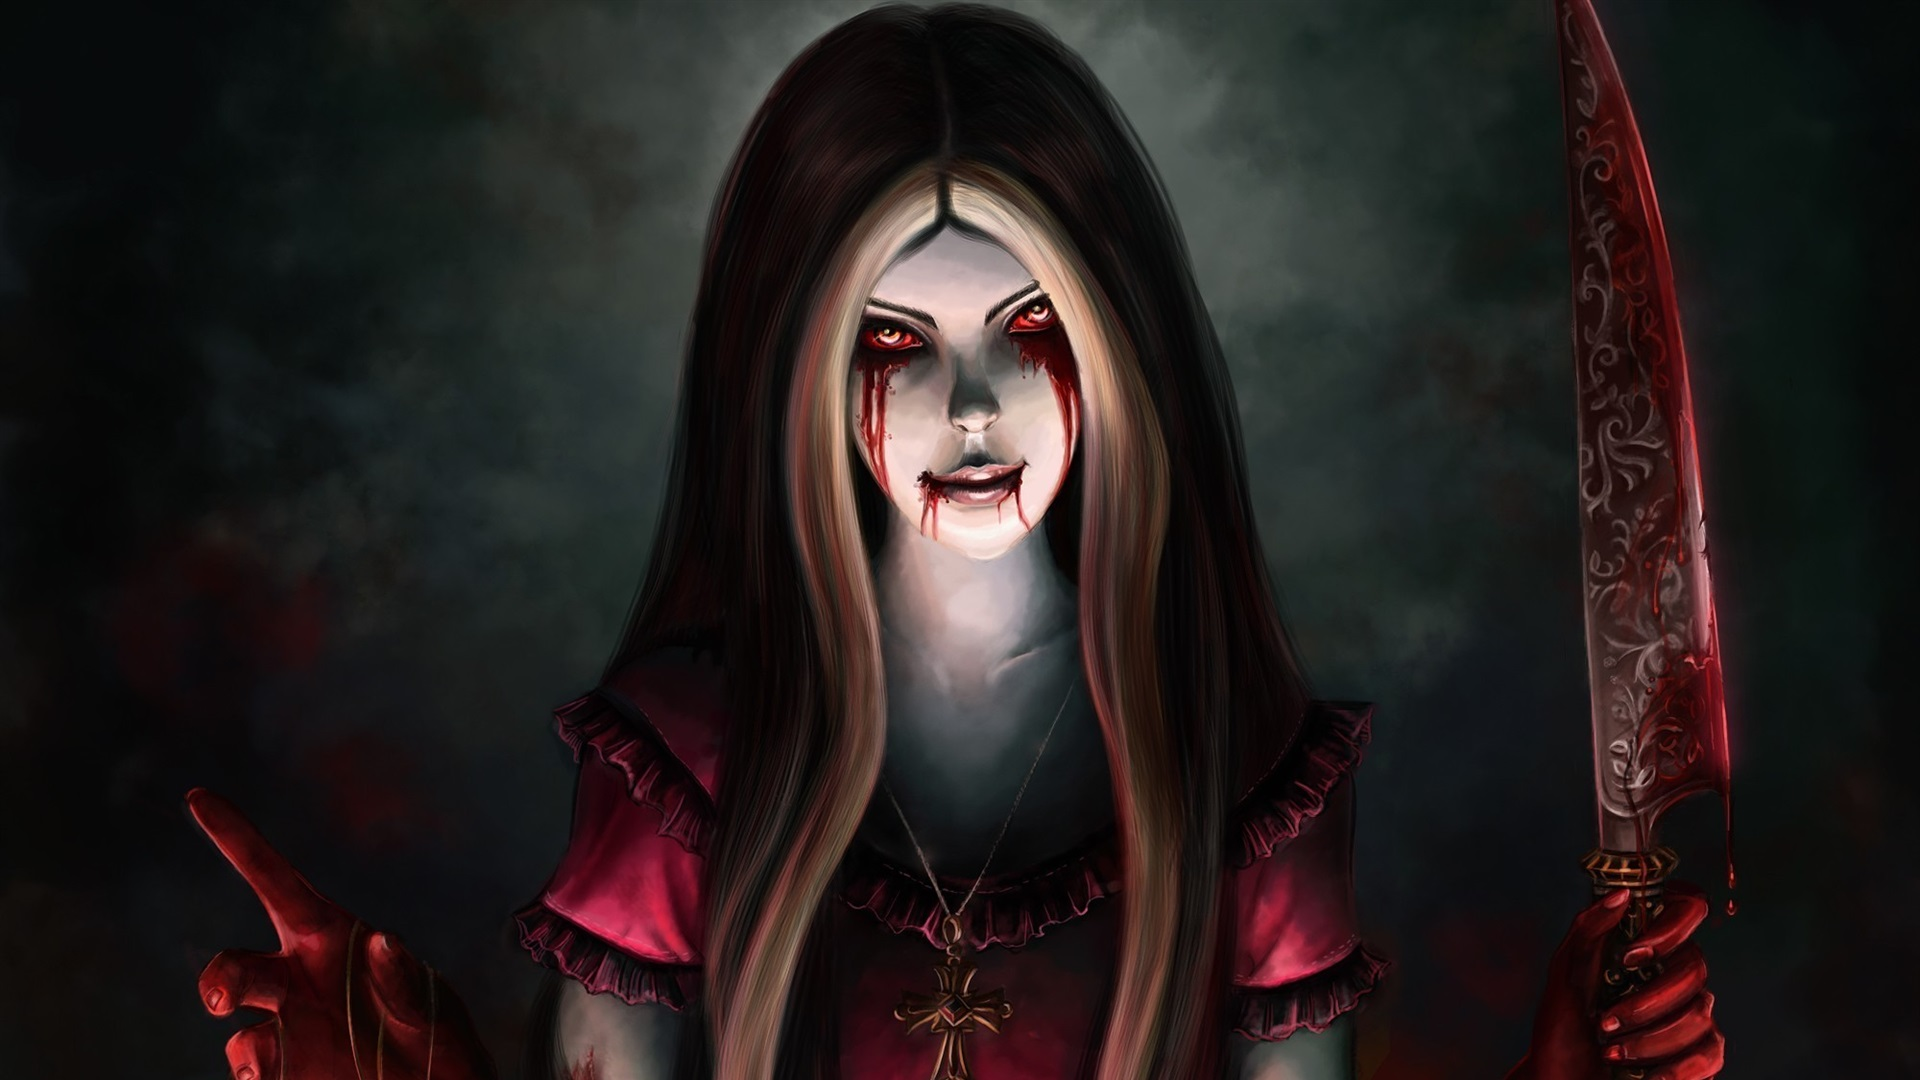 Wallpaper Alice Madness Returns Blood Knife 1920x1440 Hd Picture